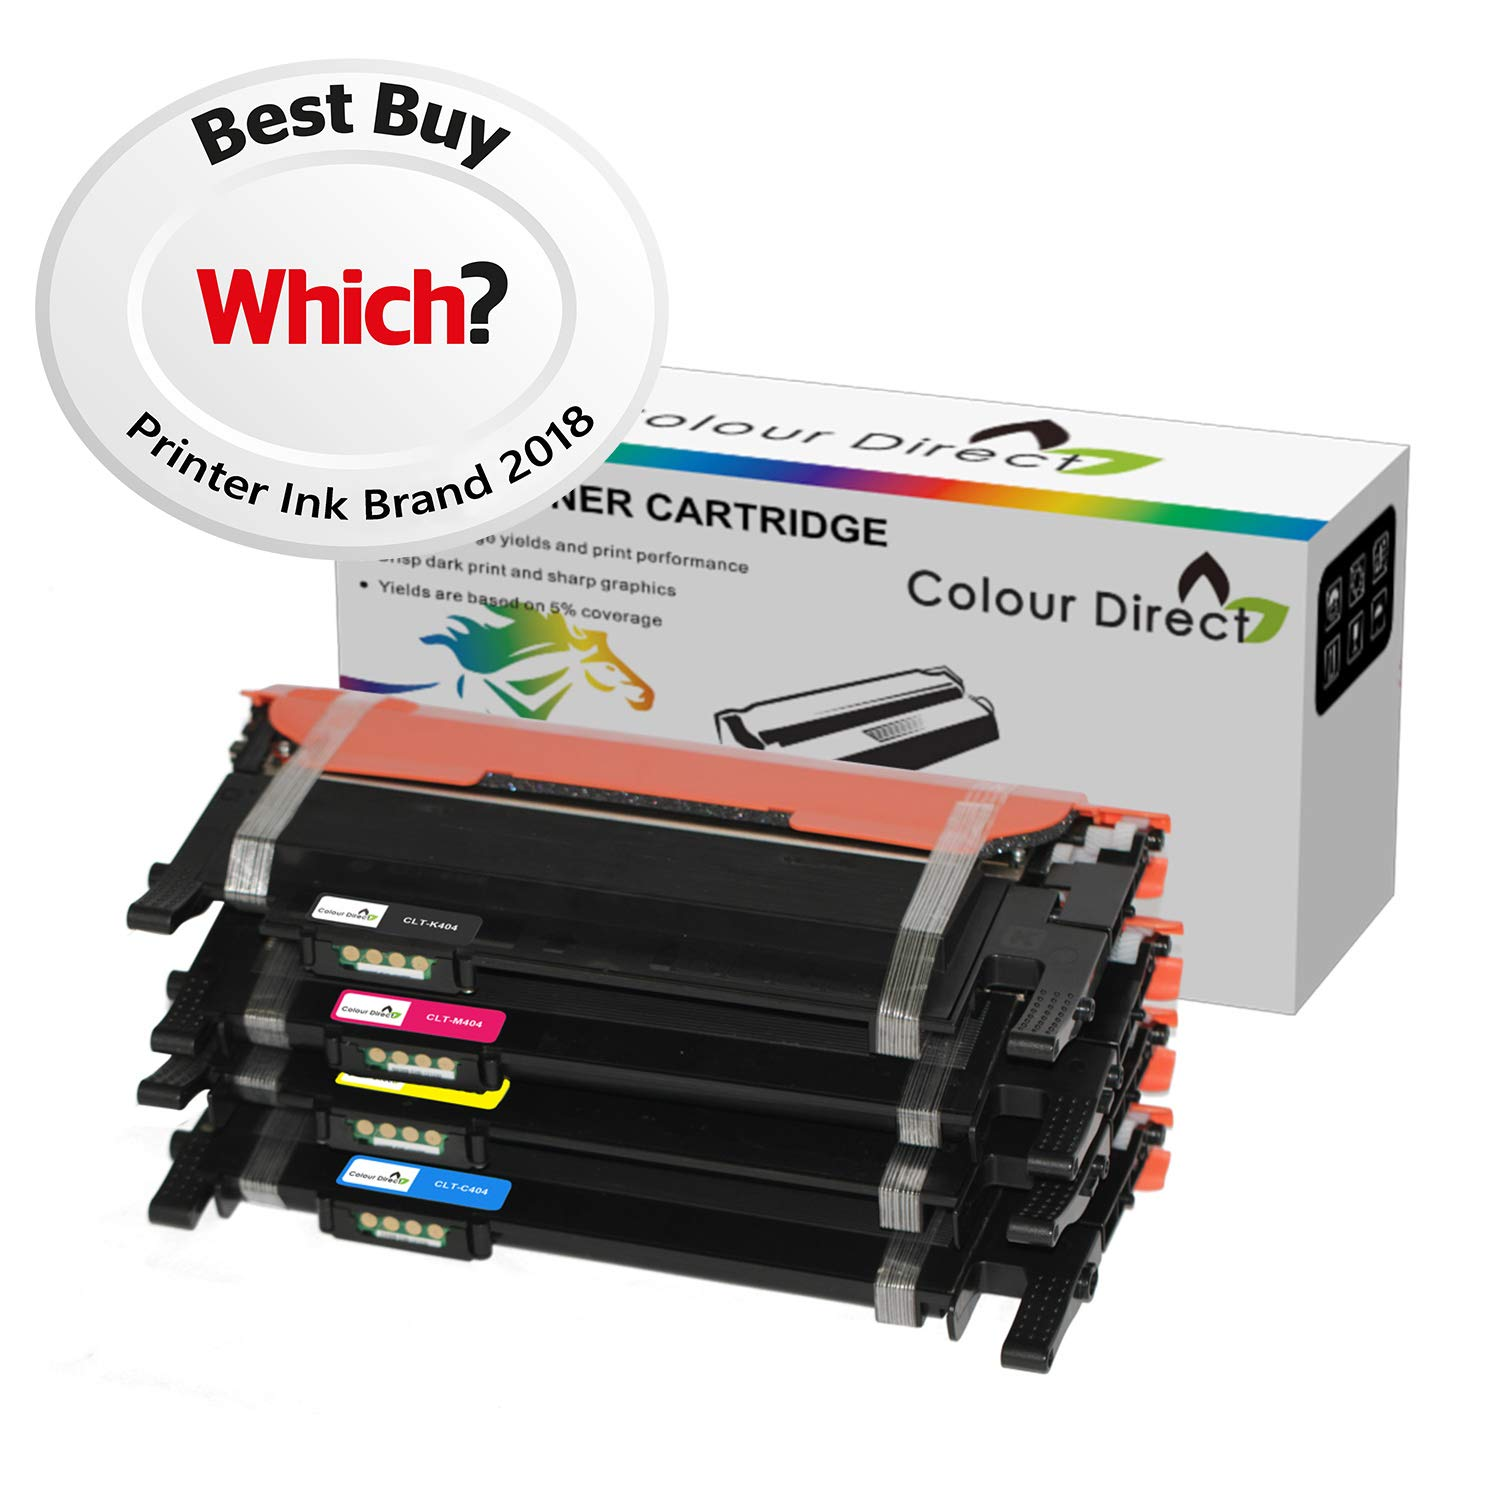 6-Pack Compatible CLT-404S Laser Printer Cartridge High Yield Use for Samsung SL-C433//SL-C433W//SL-C483W//SL-C483FW Printer Black